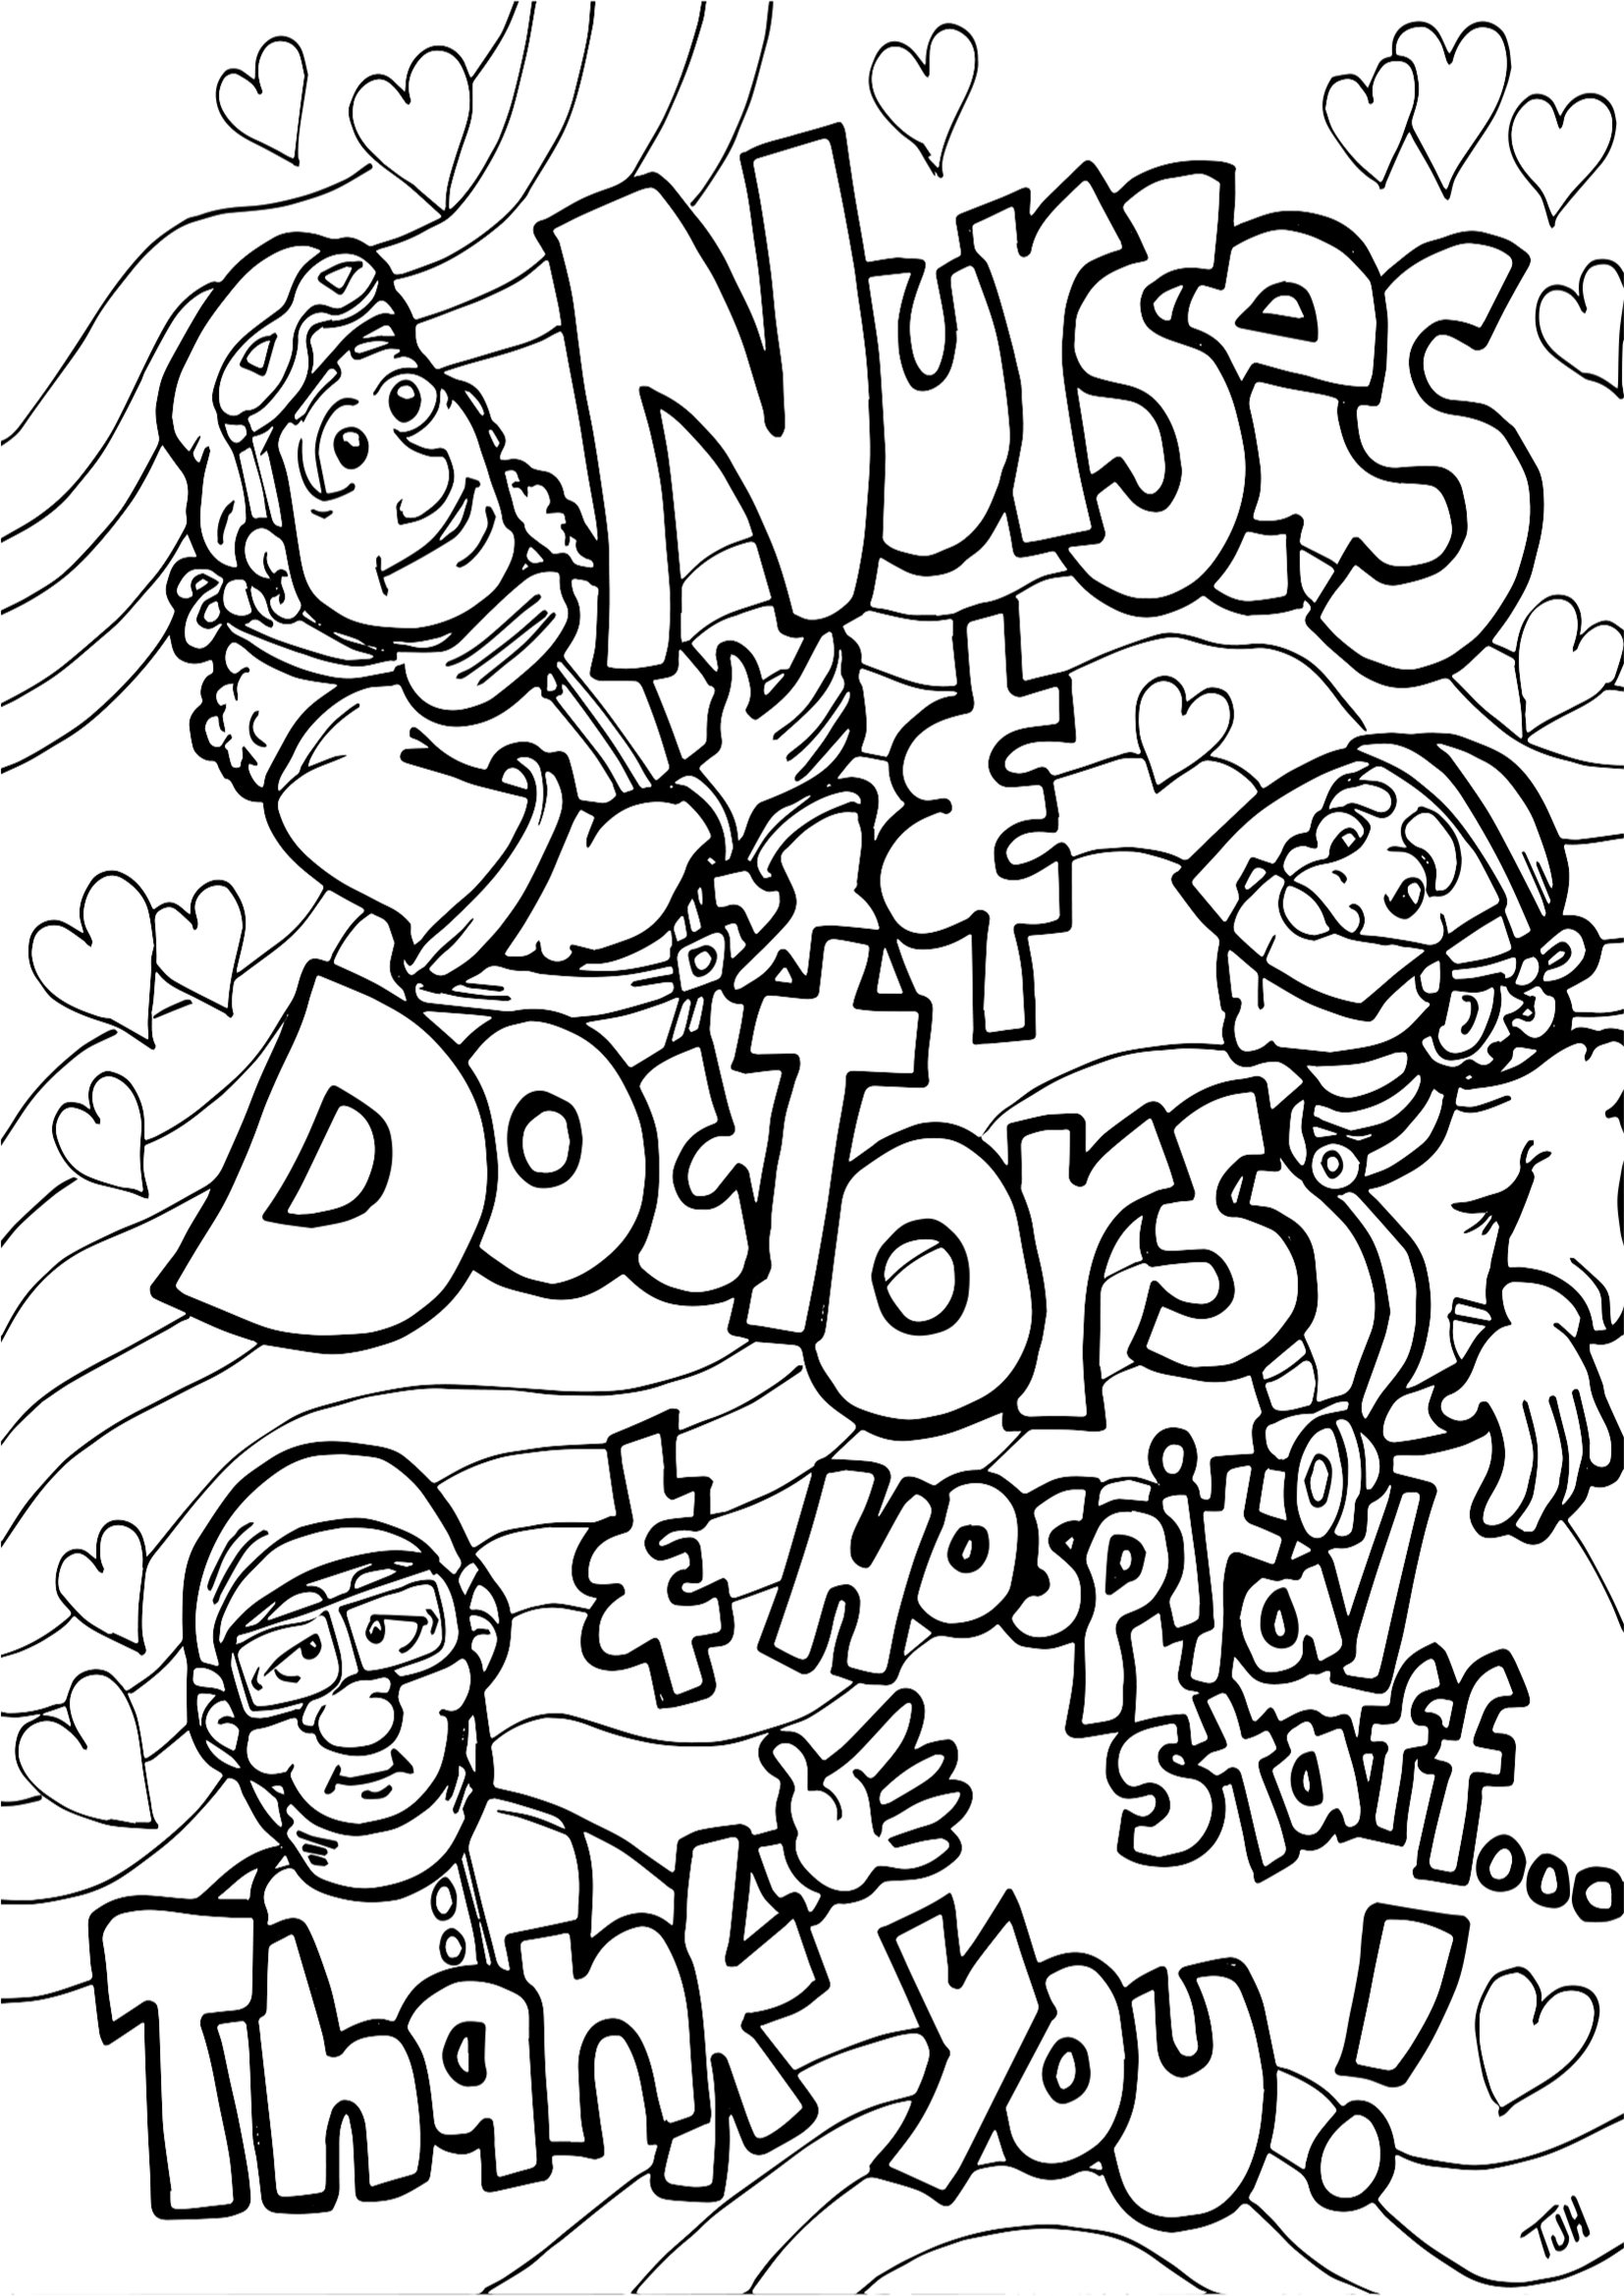 PANDEMIC COLOURING PAGES: I LOVE YOU & I MISS YOU, THANK YOU